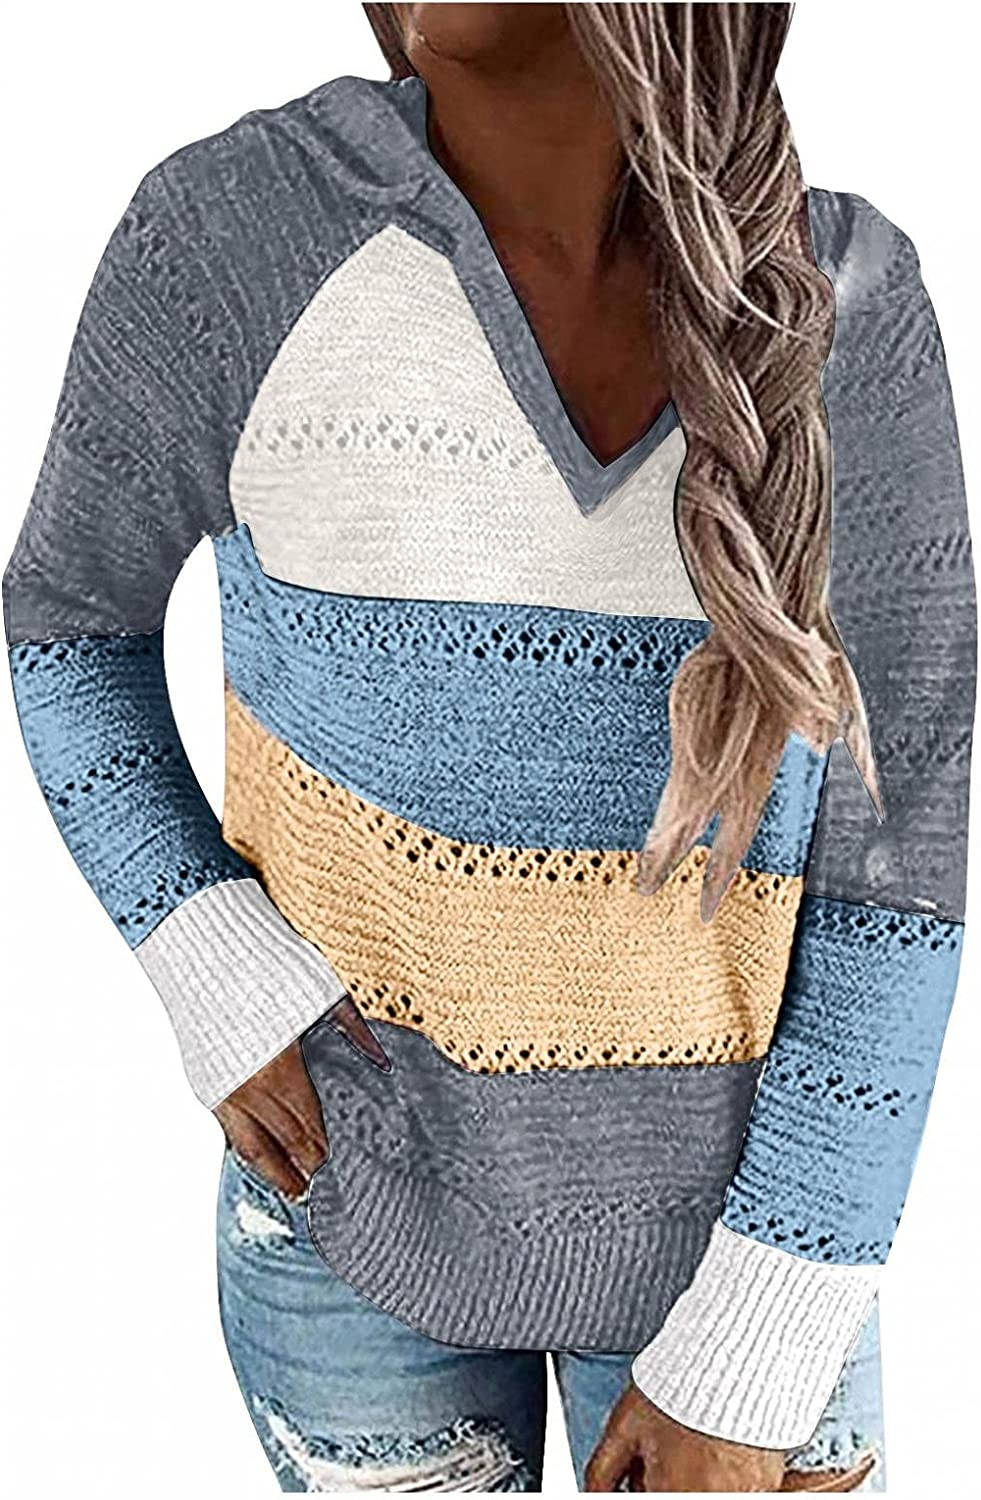 AODONG Women's Lightweight Color Block Knit Hoodies Sweaters Long Sleeve V Neck Loose Drawstring Pullover Sweatshirts